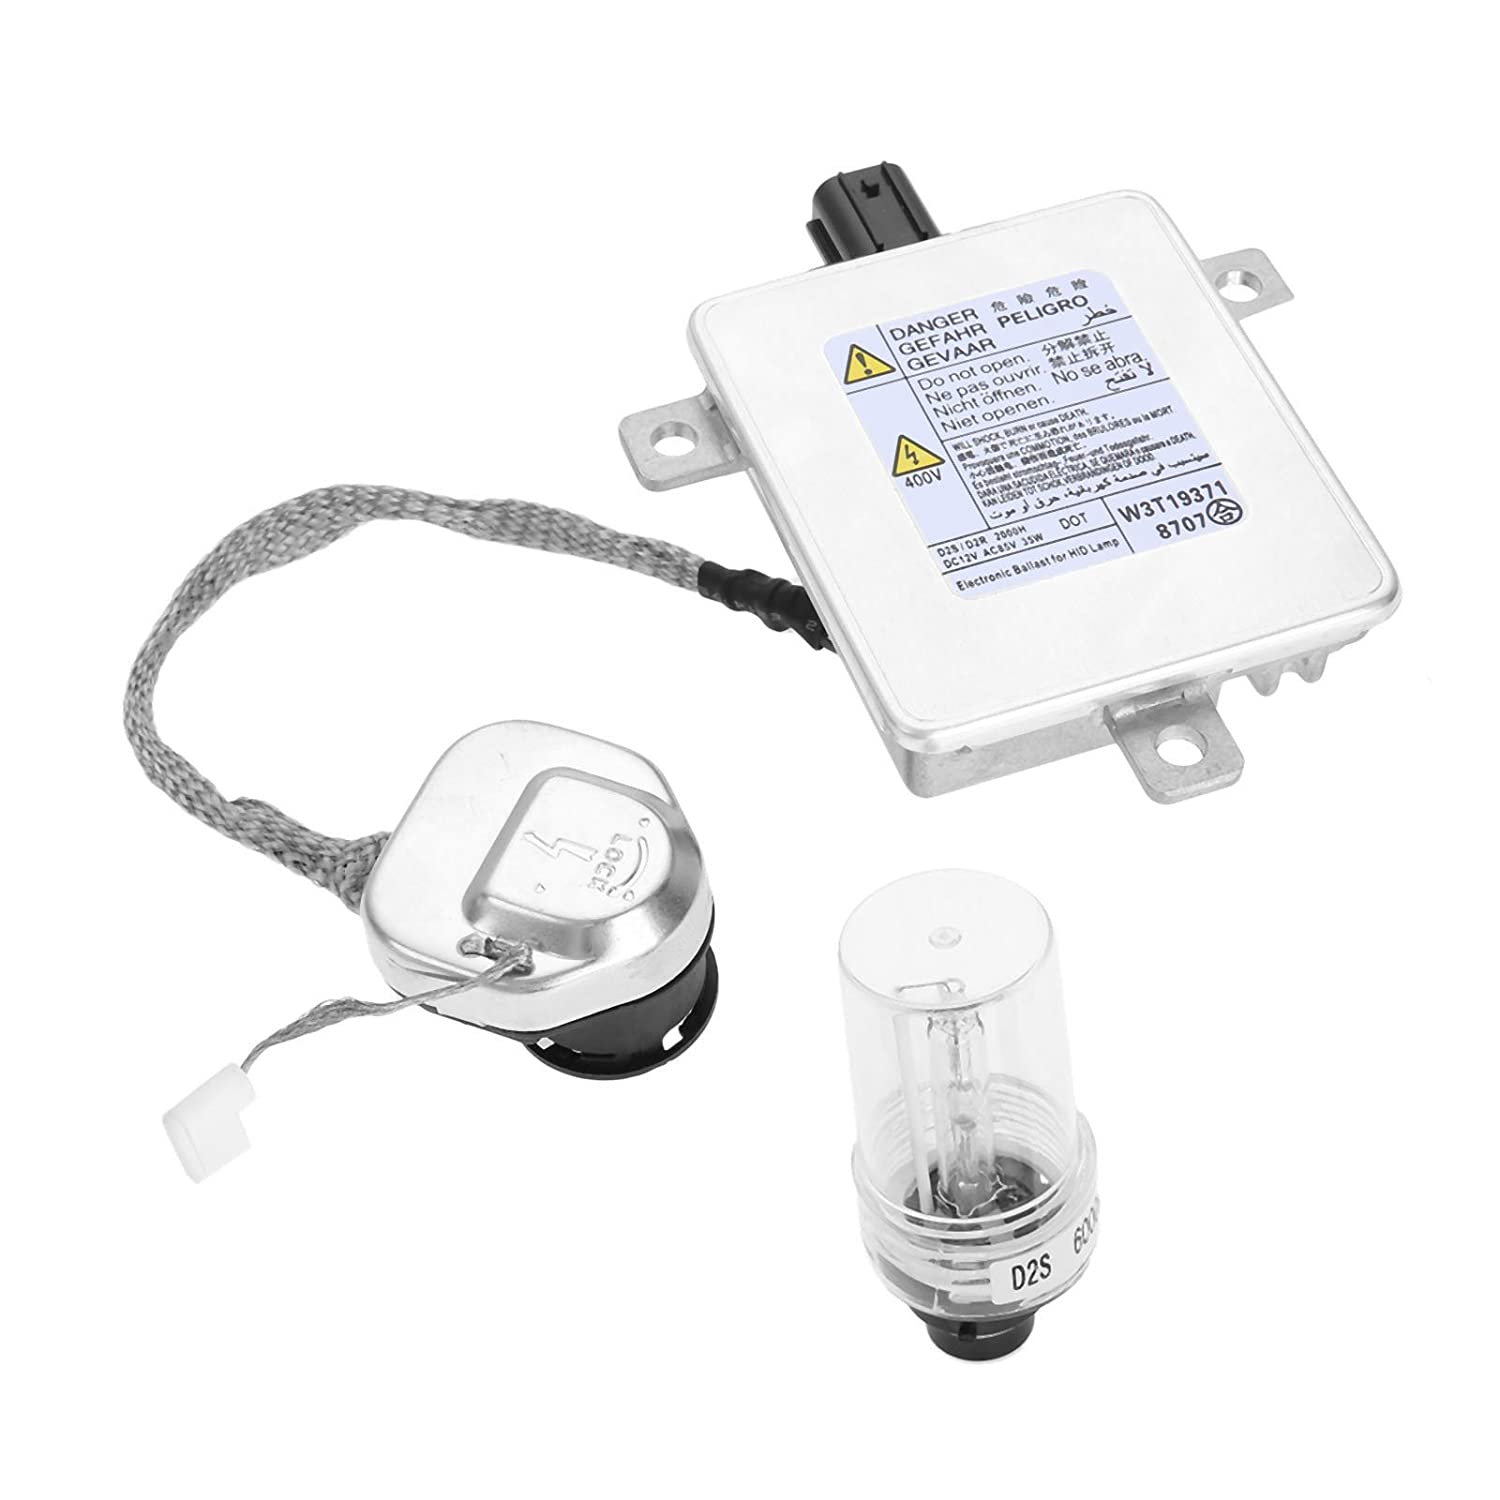 Aupoko Replacement W3T19371 Xenon HID Headlight Ballast with Igniter and D2S Bulb Control Unit Assembly Module for W3T15671 W3T16271 W3T20971, Fit for Acura Honda Mazda Mitsubishi - 6 Year Warranty